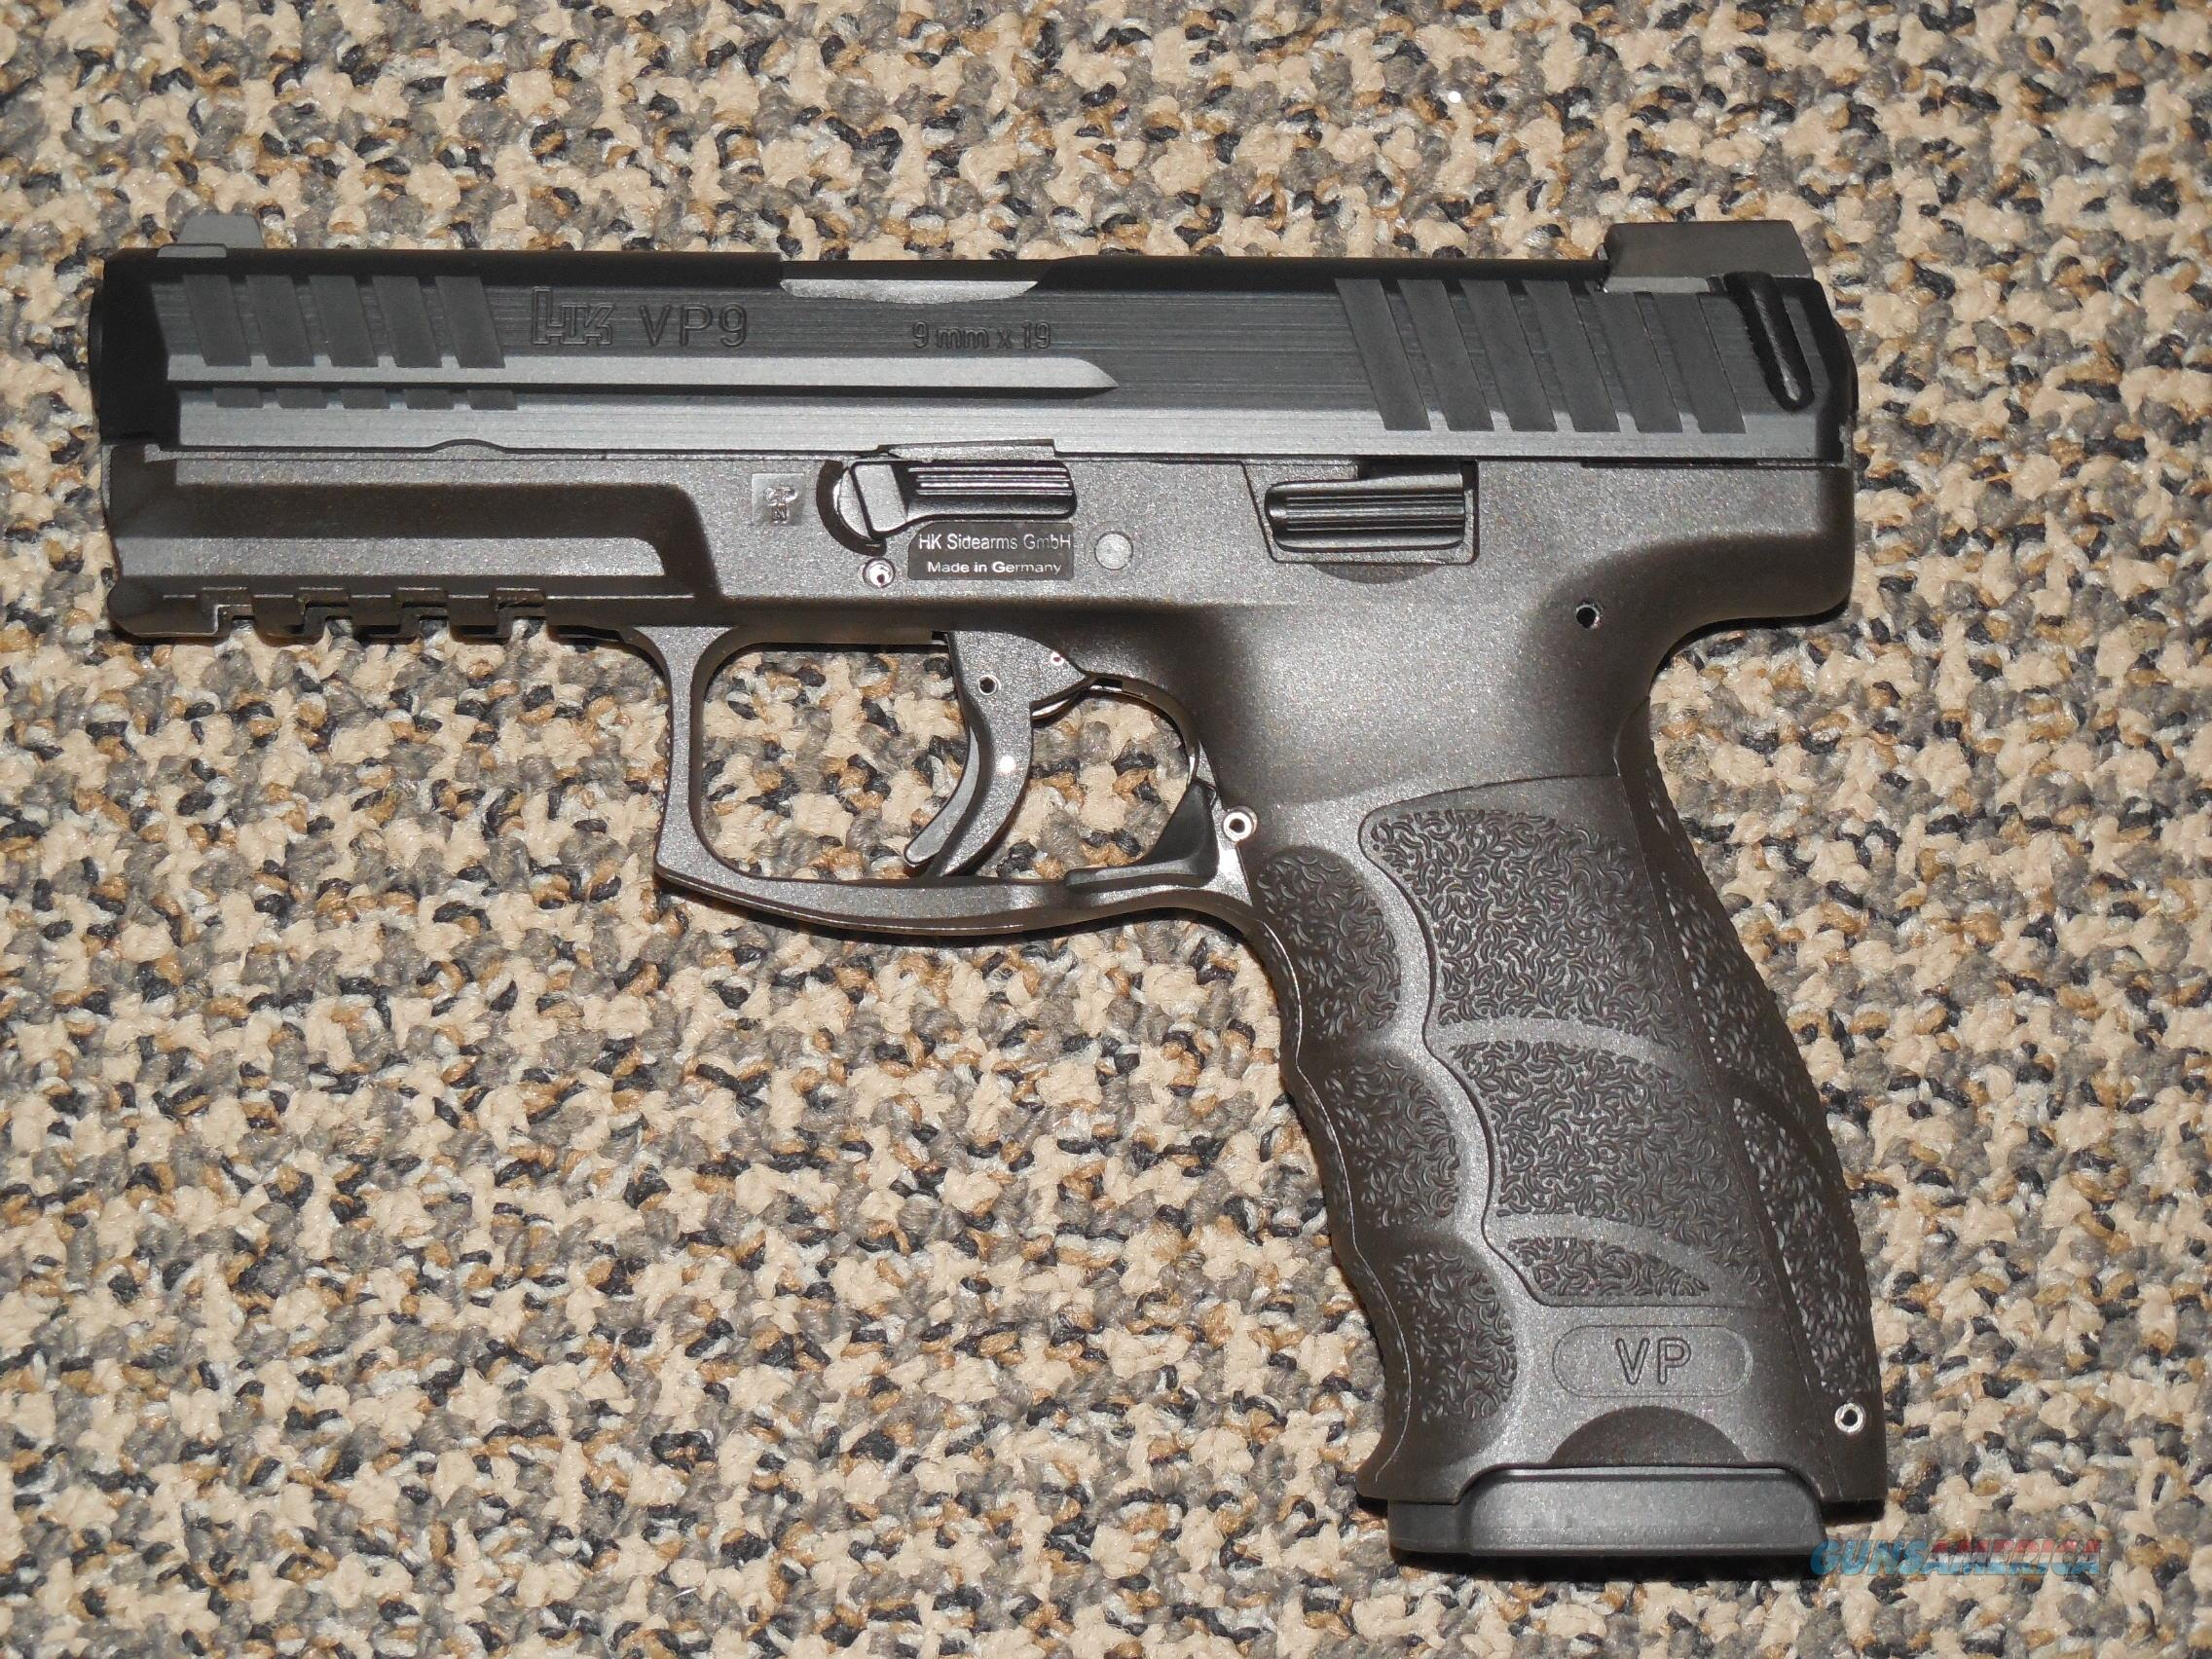 HK VP-9 LE PISTOL IN 9 MM WITH THREE MAGS AND NIGHT SIGHTS  Guns > Pistols > Heckler & Koch Pistols > Polymer Frame